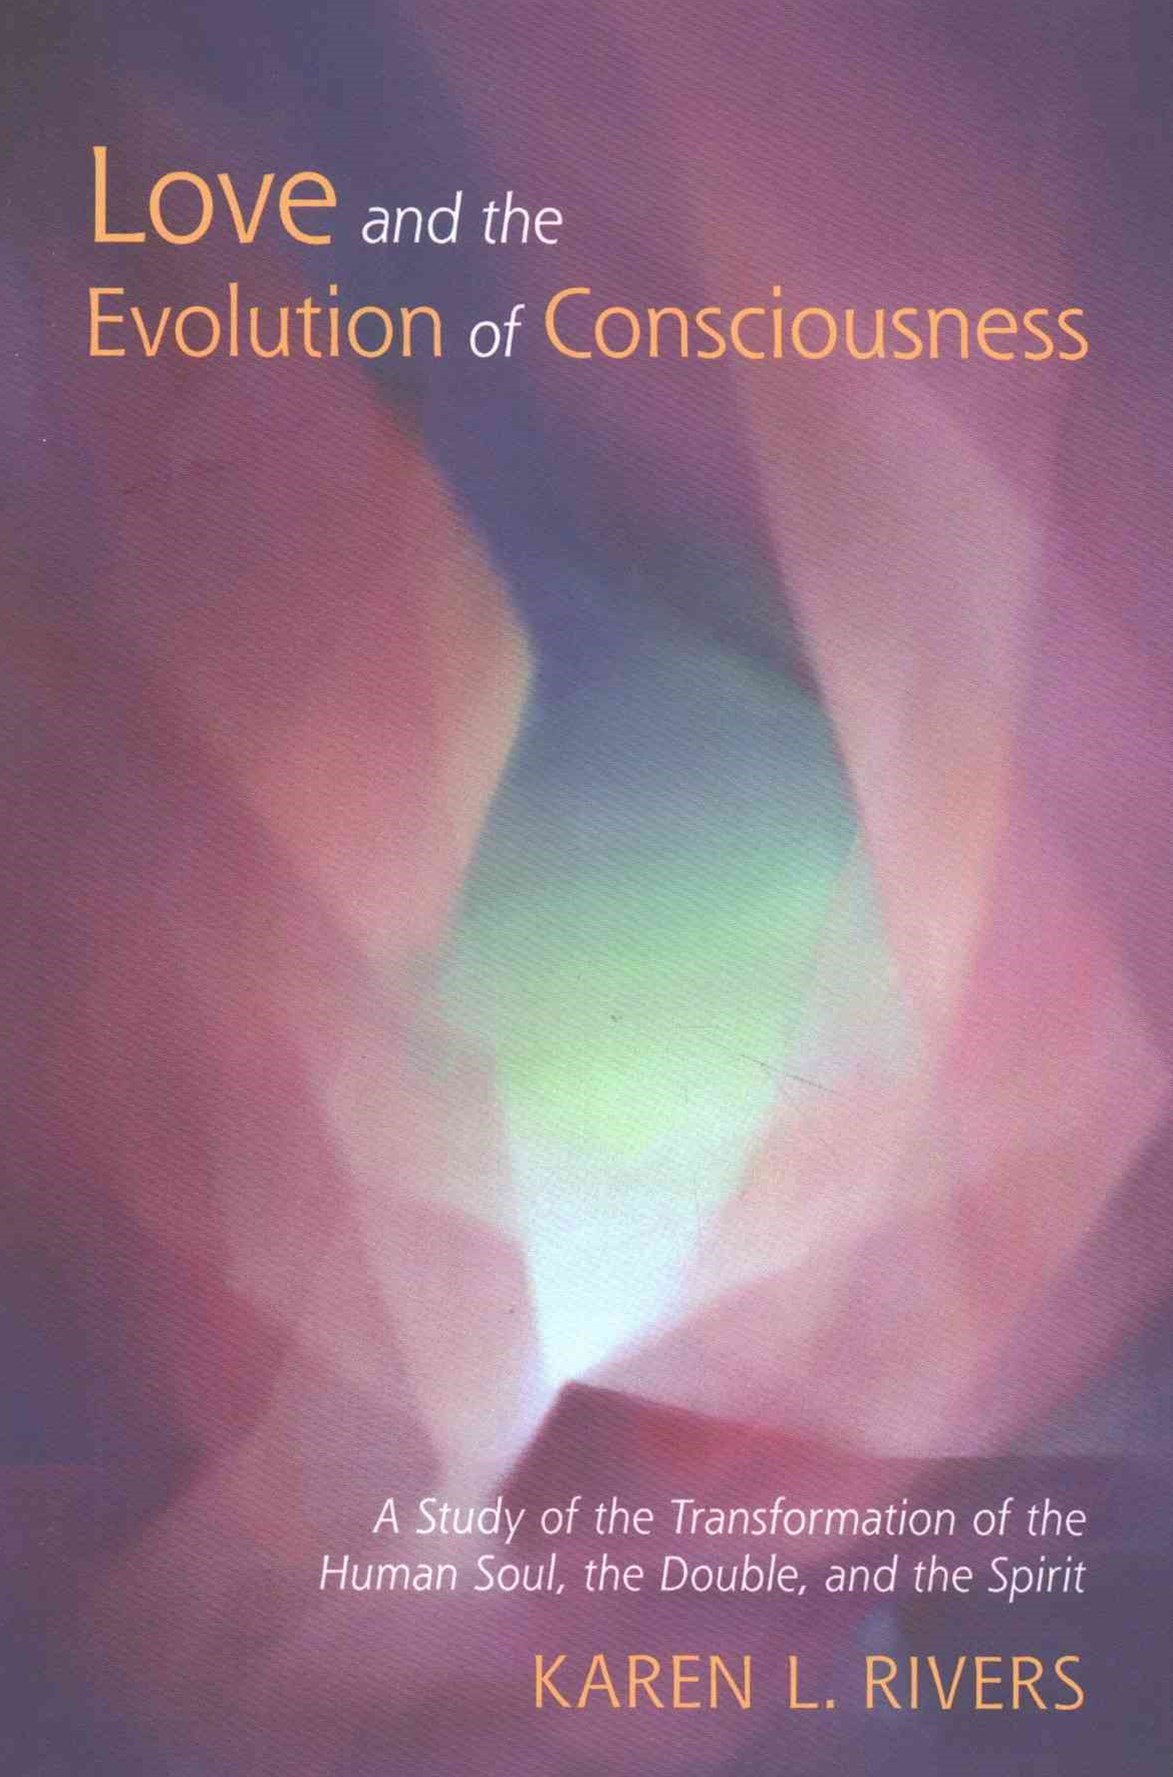 Love and the Evolution of Consciousness